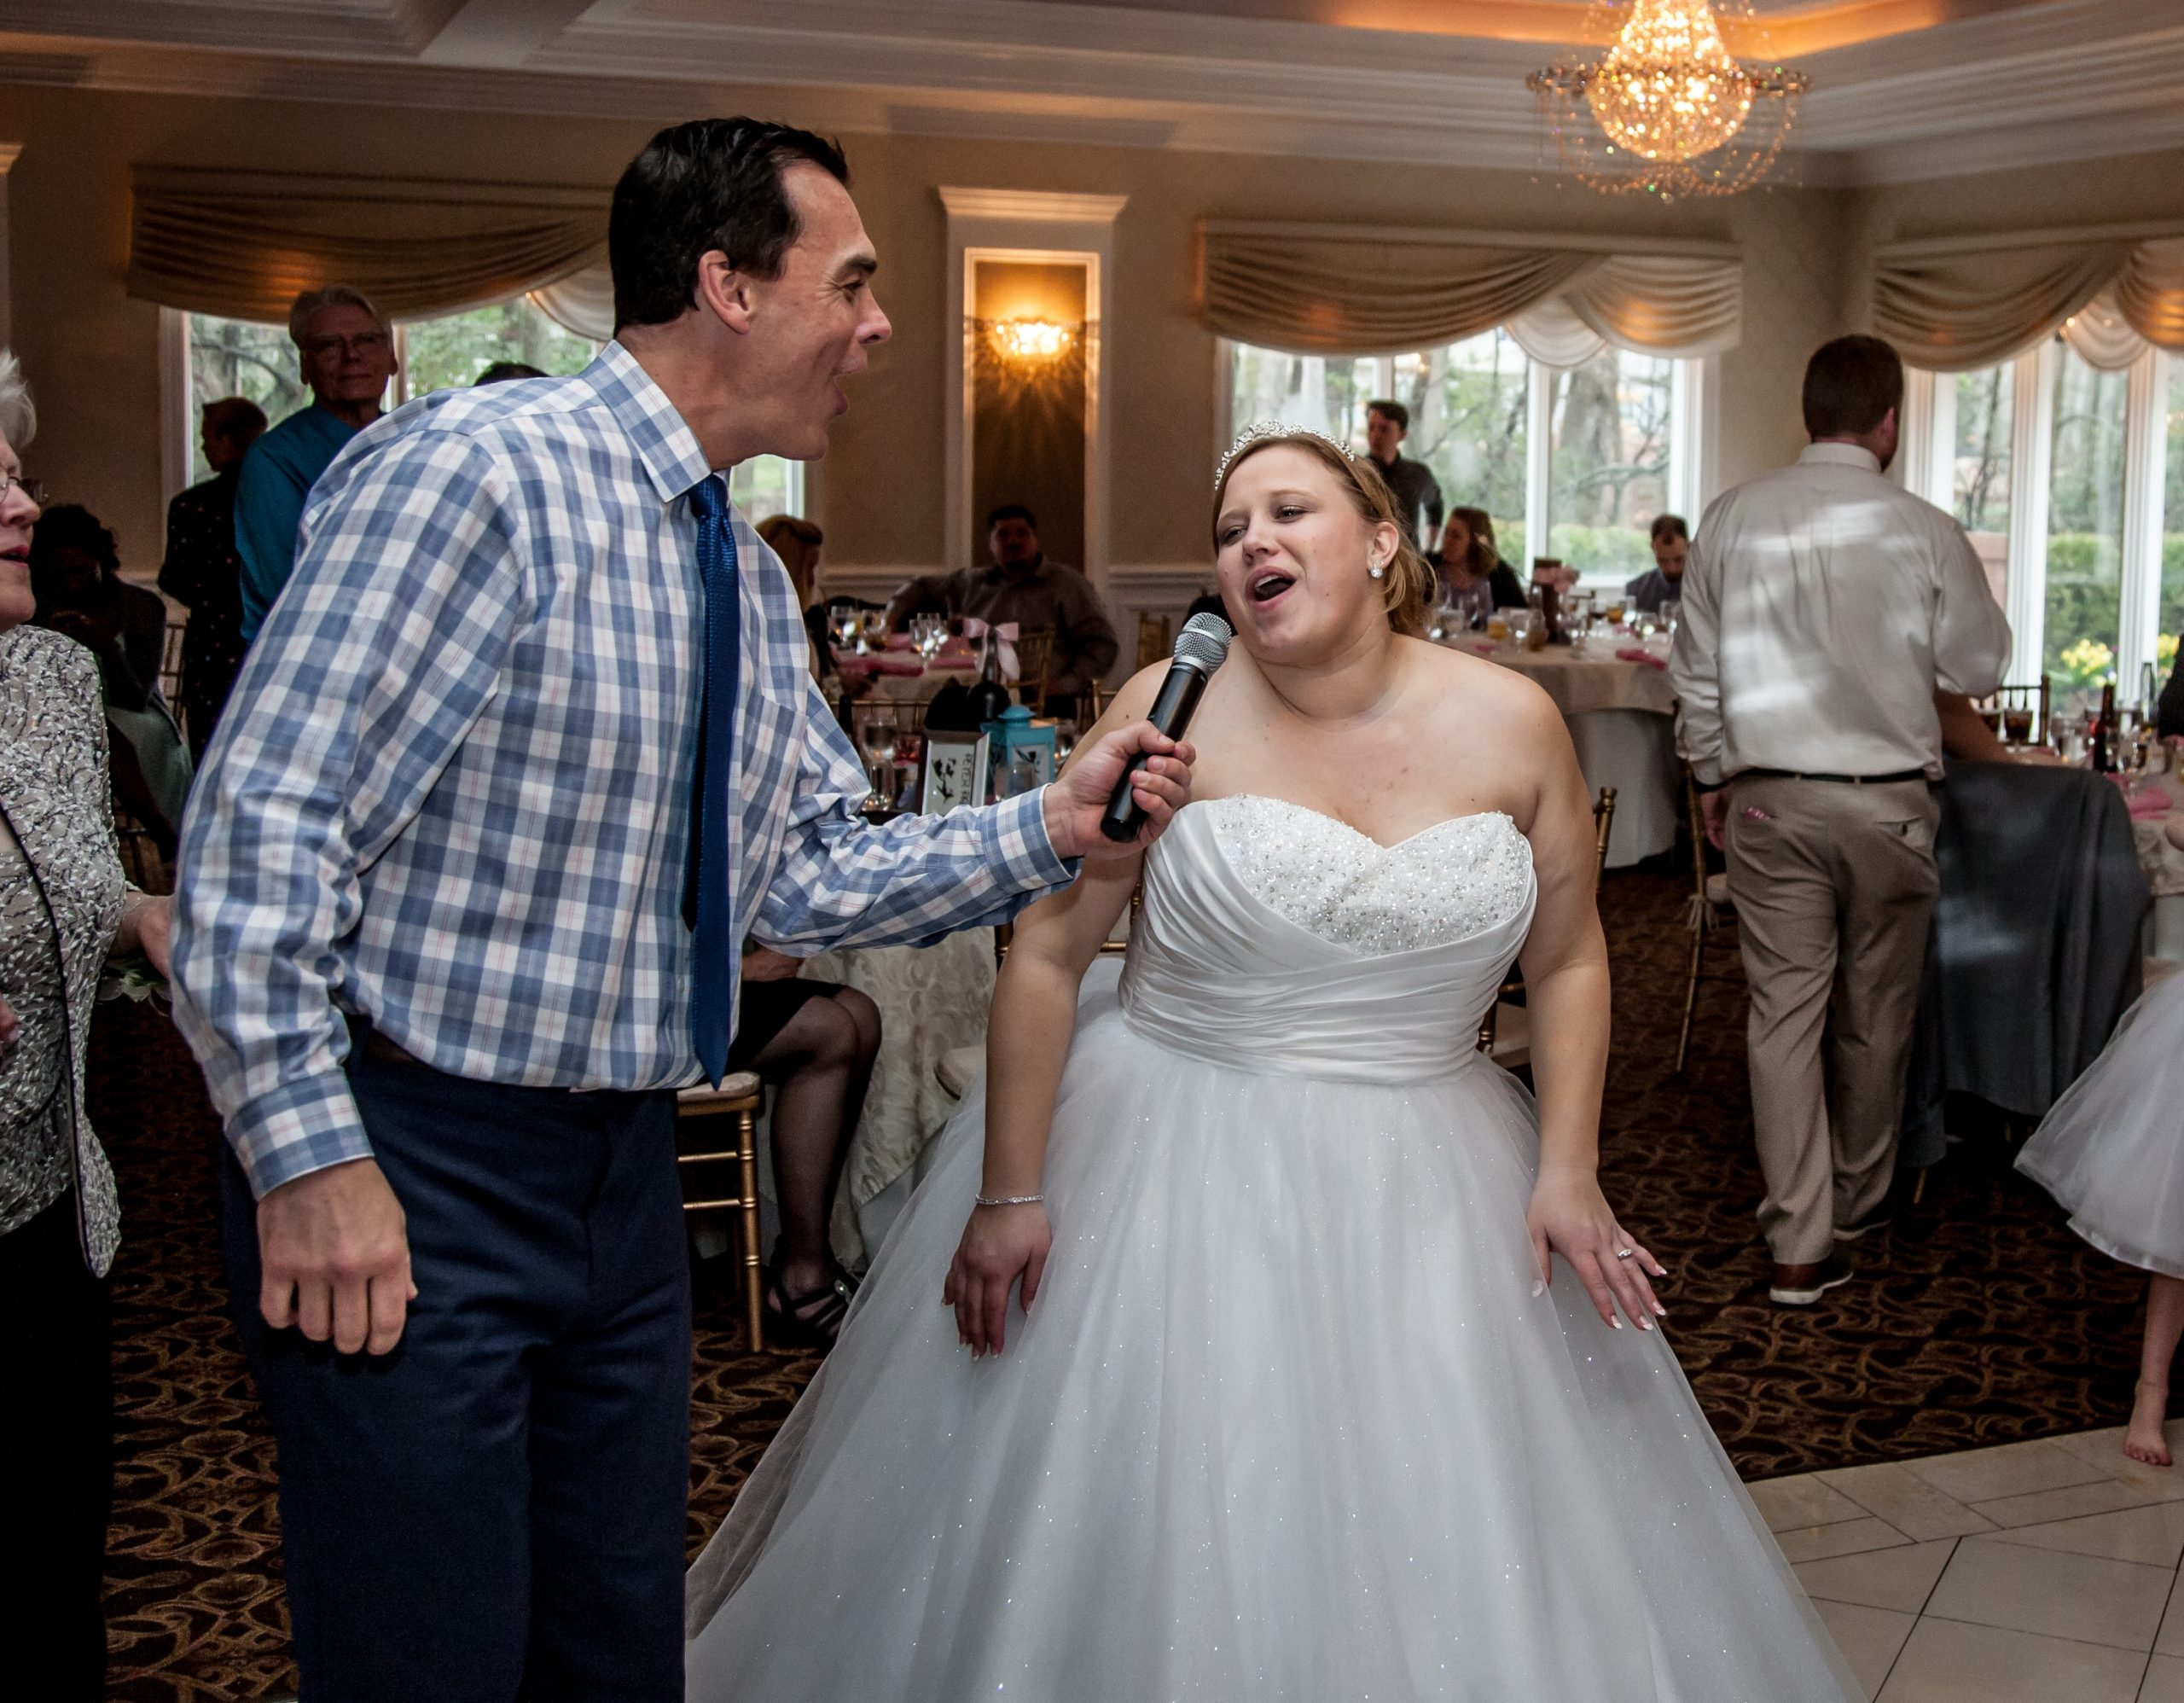 Elite Entertainment_ NJWedding_ EliteDigitalImages_EnglishManor_Cassidy and Dennis8 Mike Walter3